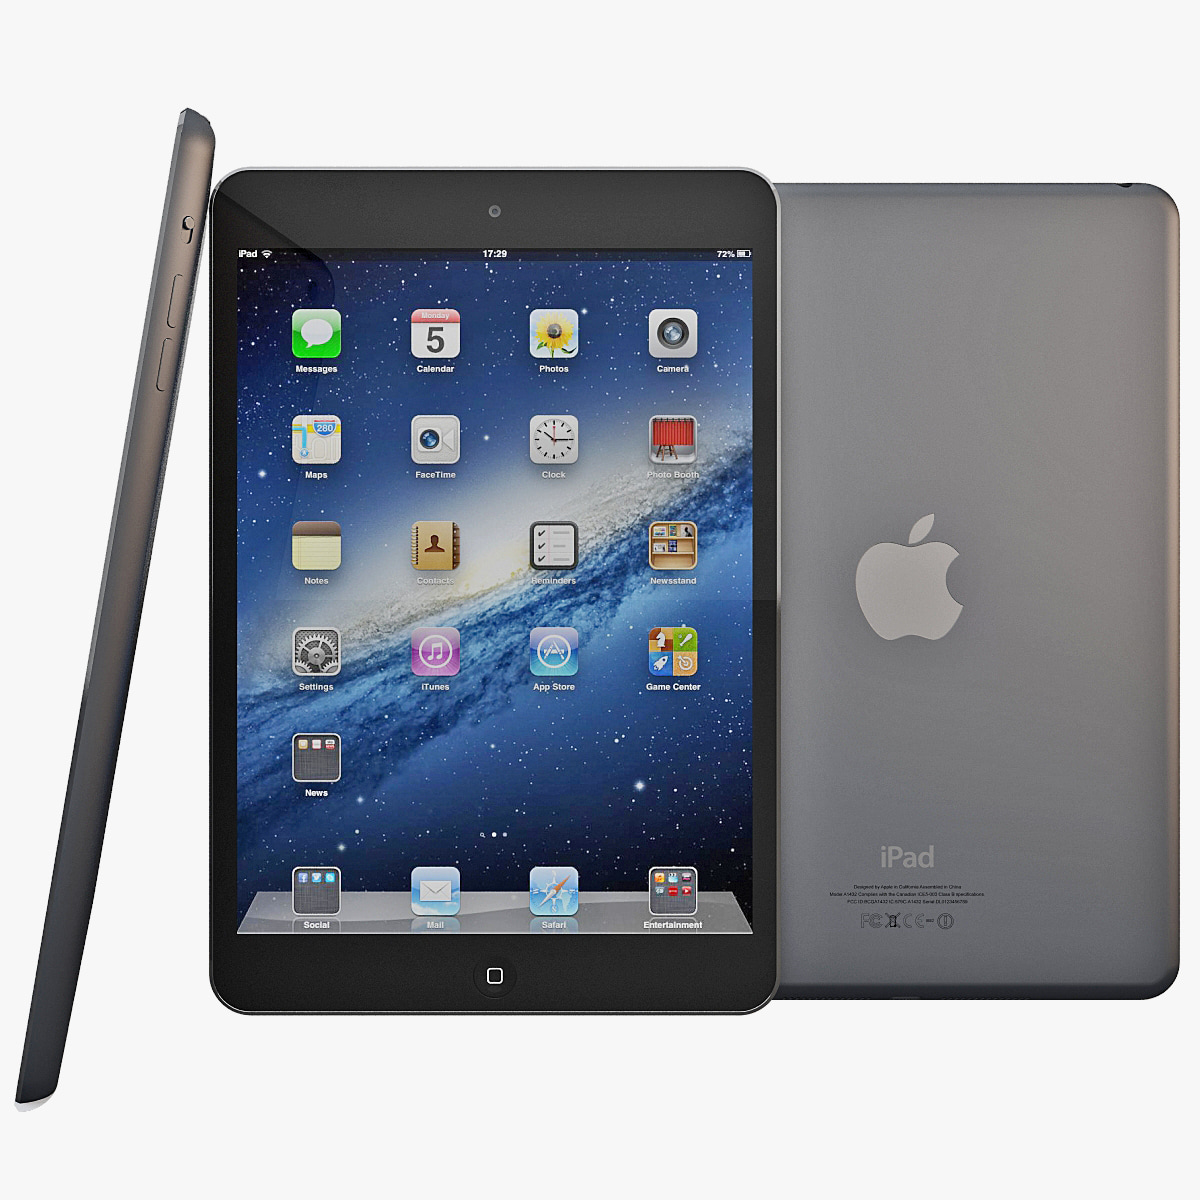 iPad_Mini_Black_000.jpg